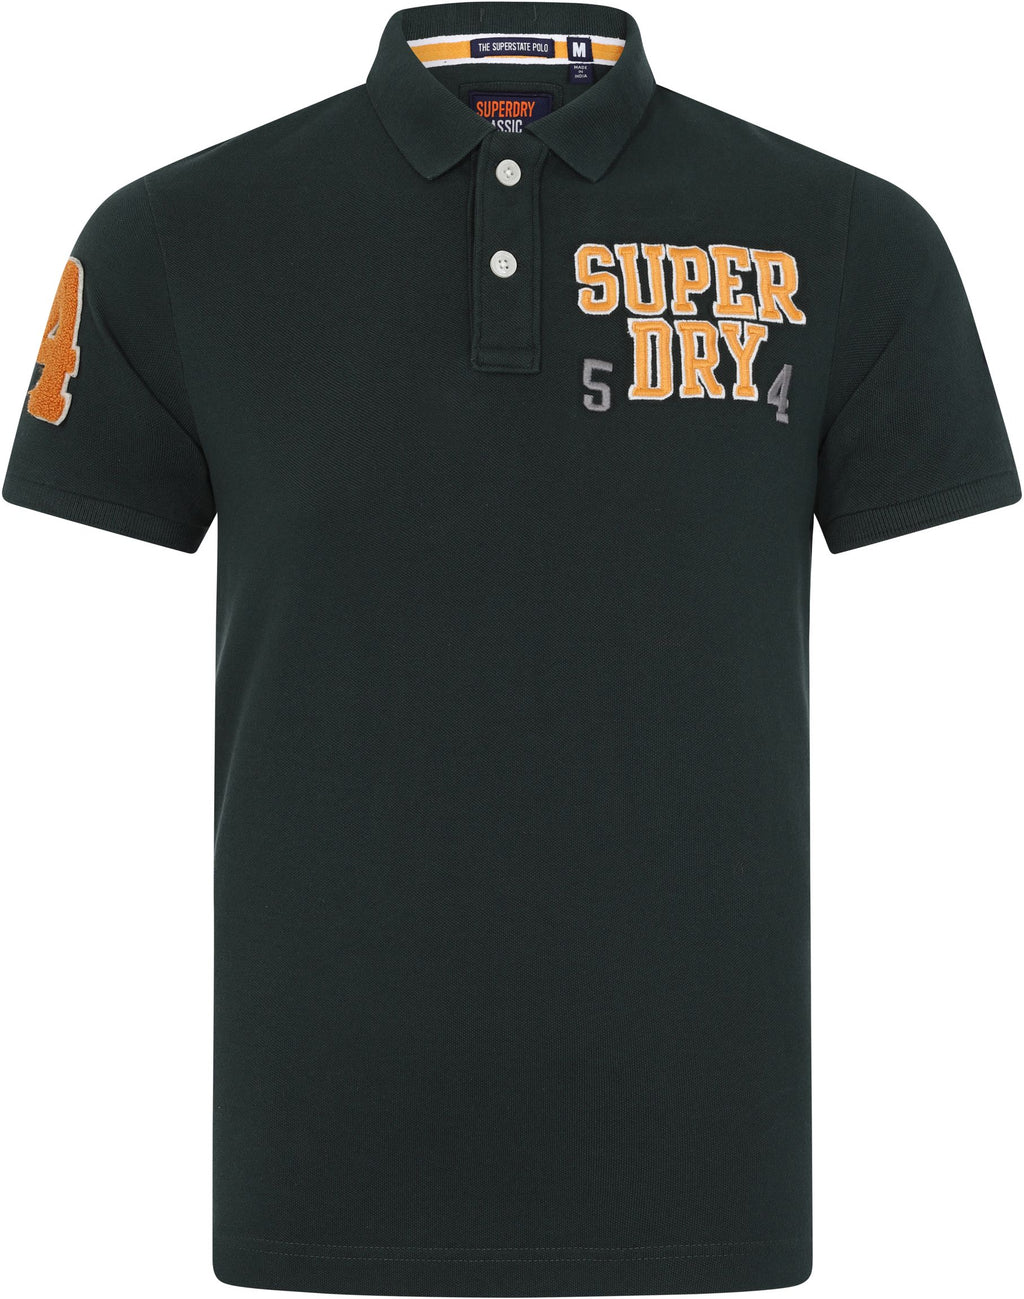 Superdry Oldskool Superstate Pique Polo Shirt Green